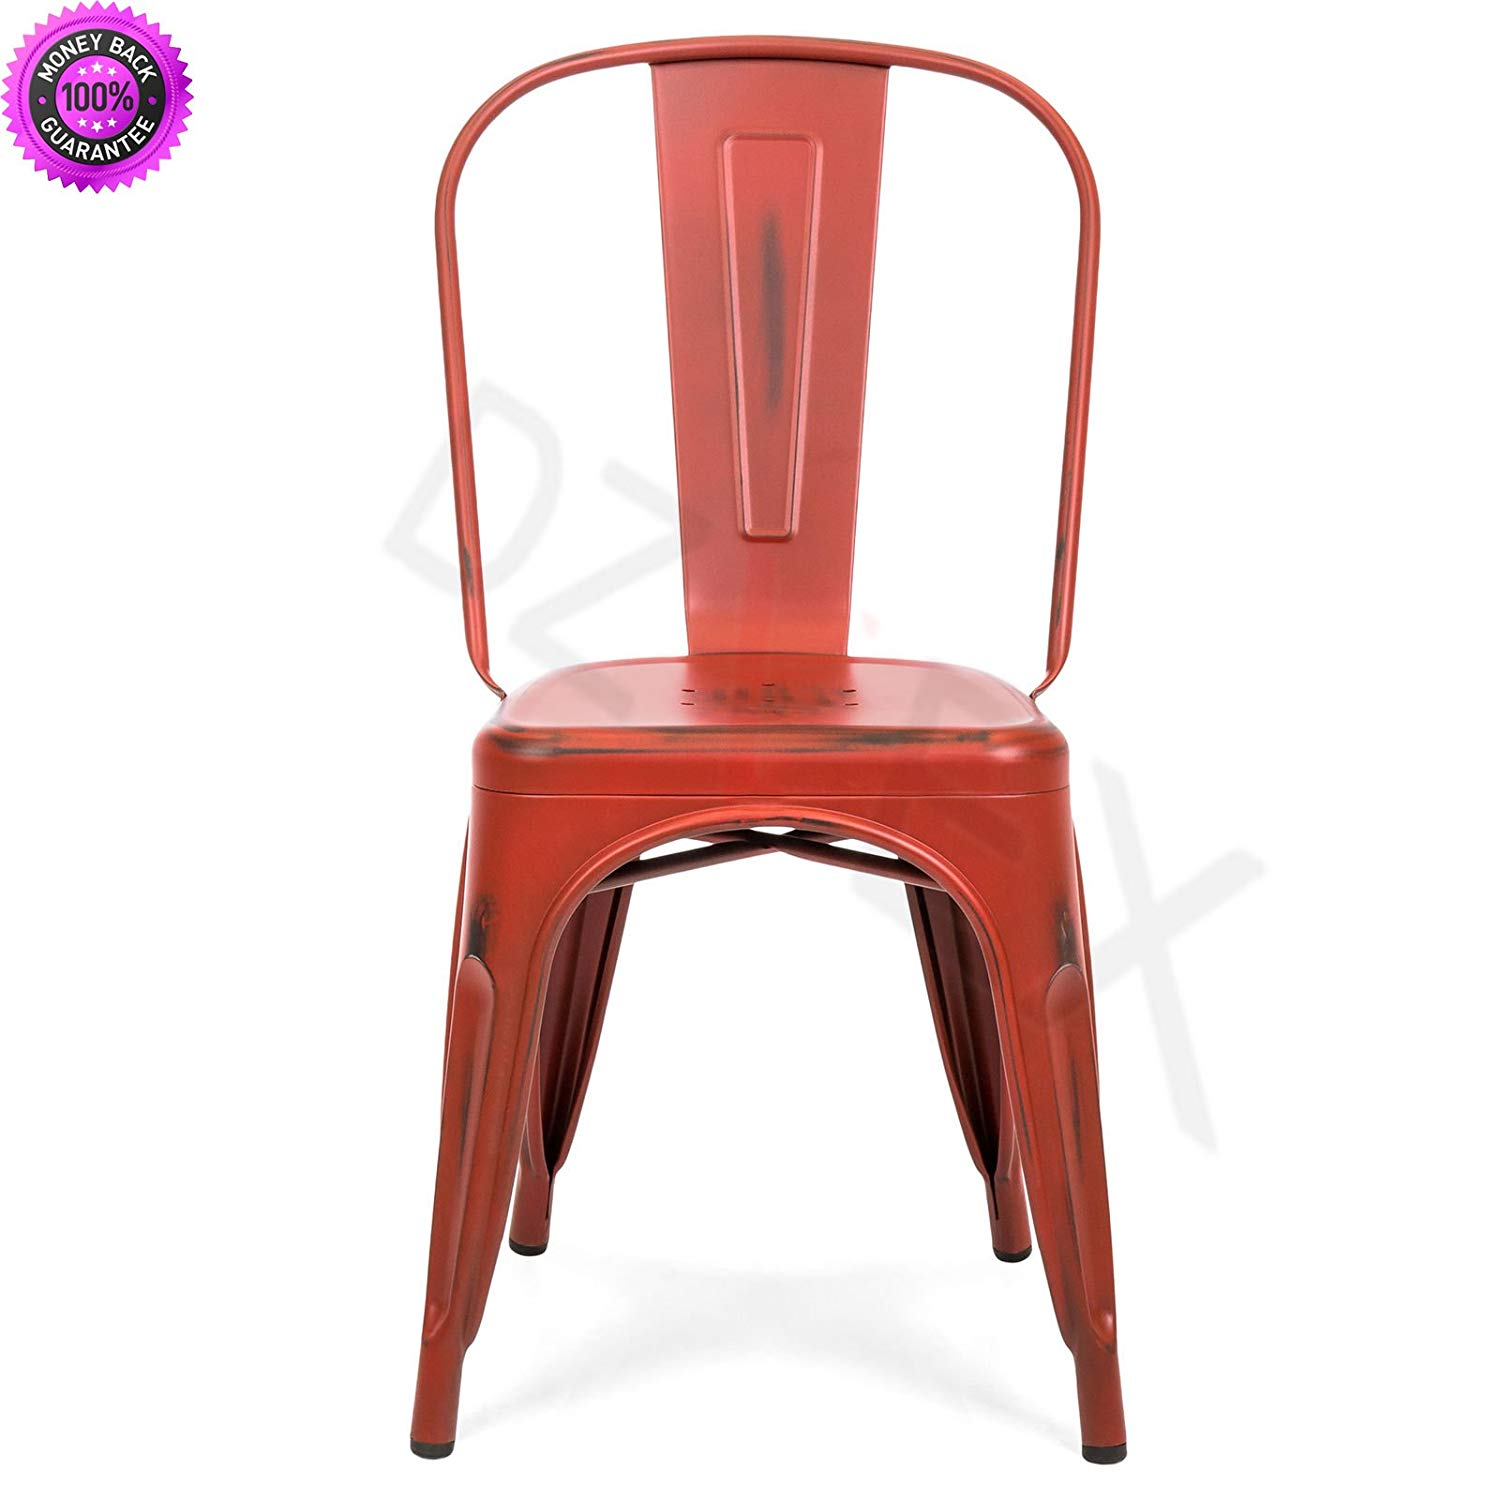 DzVeX_Set of 4 Distressed Industrial Metal Dining Side Chairs (Red) And restaurant chairs stacking chairs waiting room chairs office furniture chair mats for carpet chairs for sale cheap office